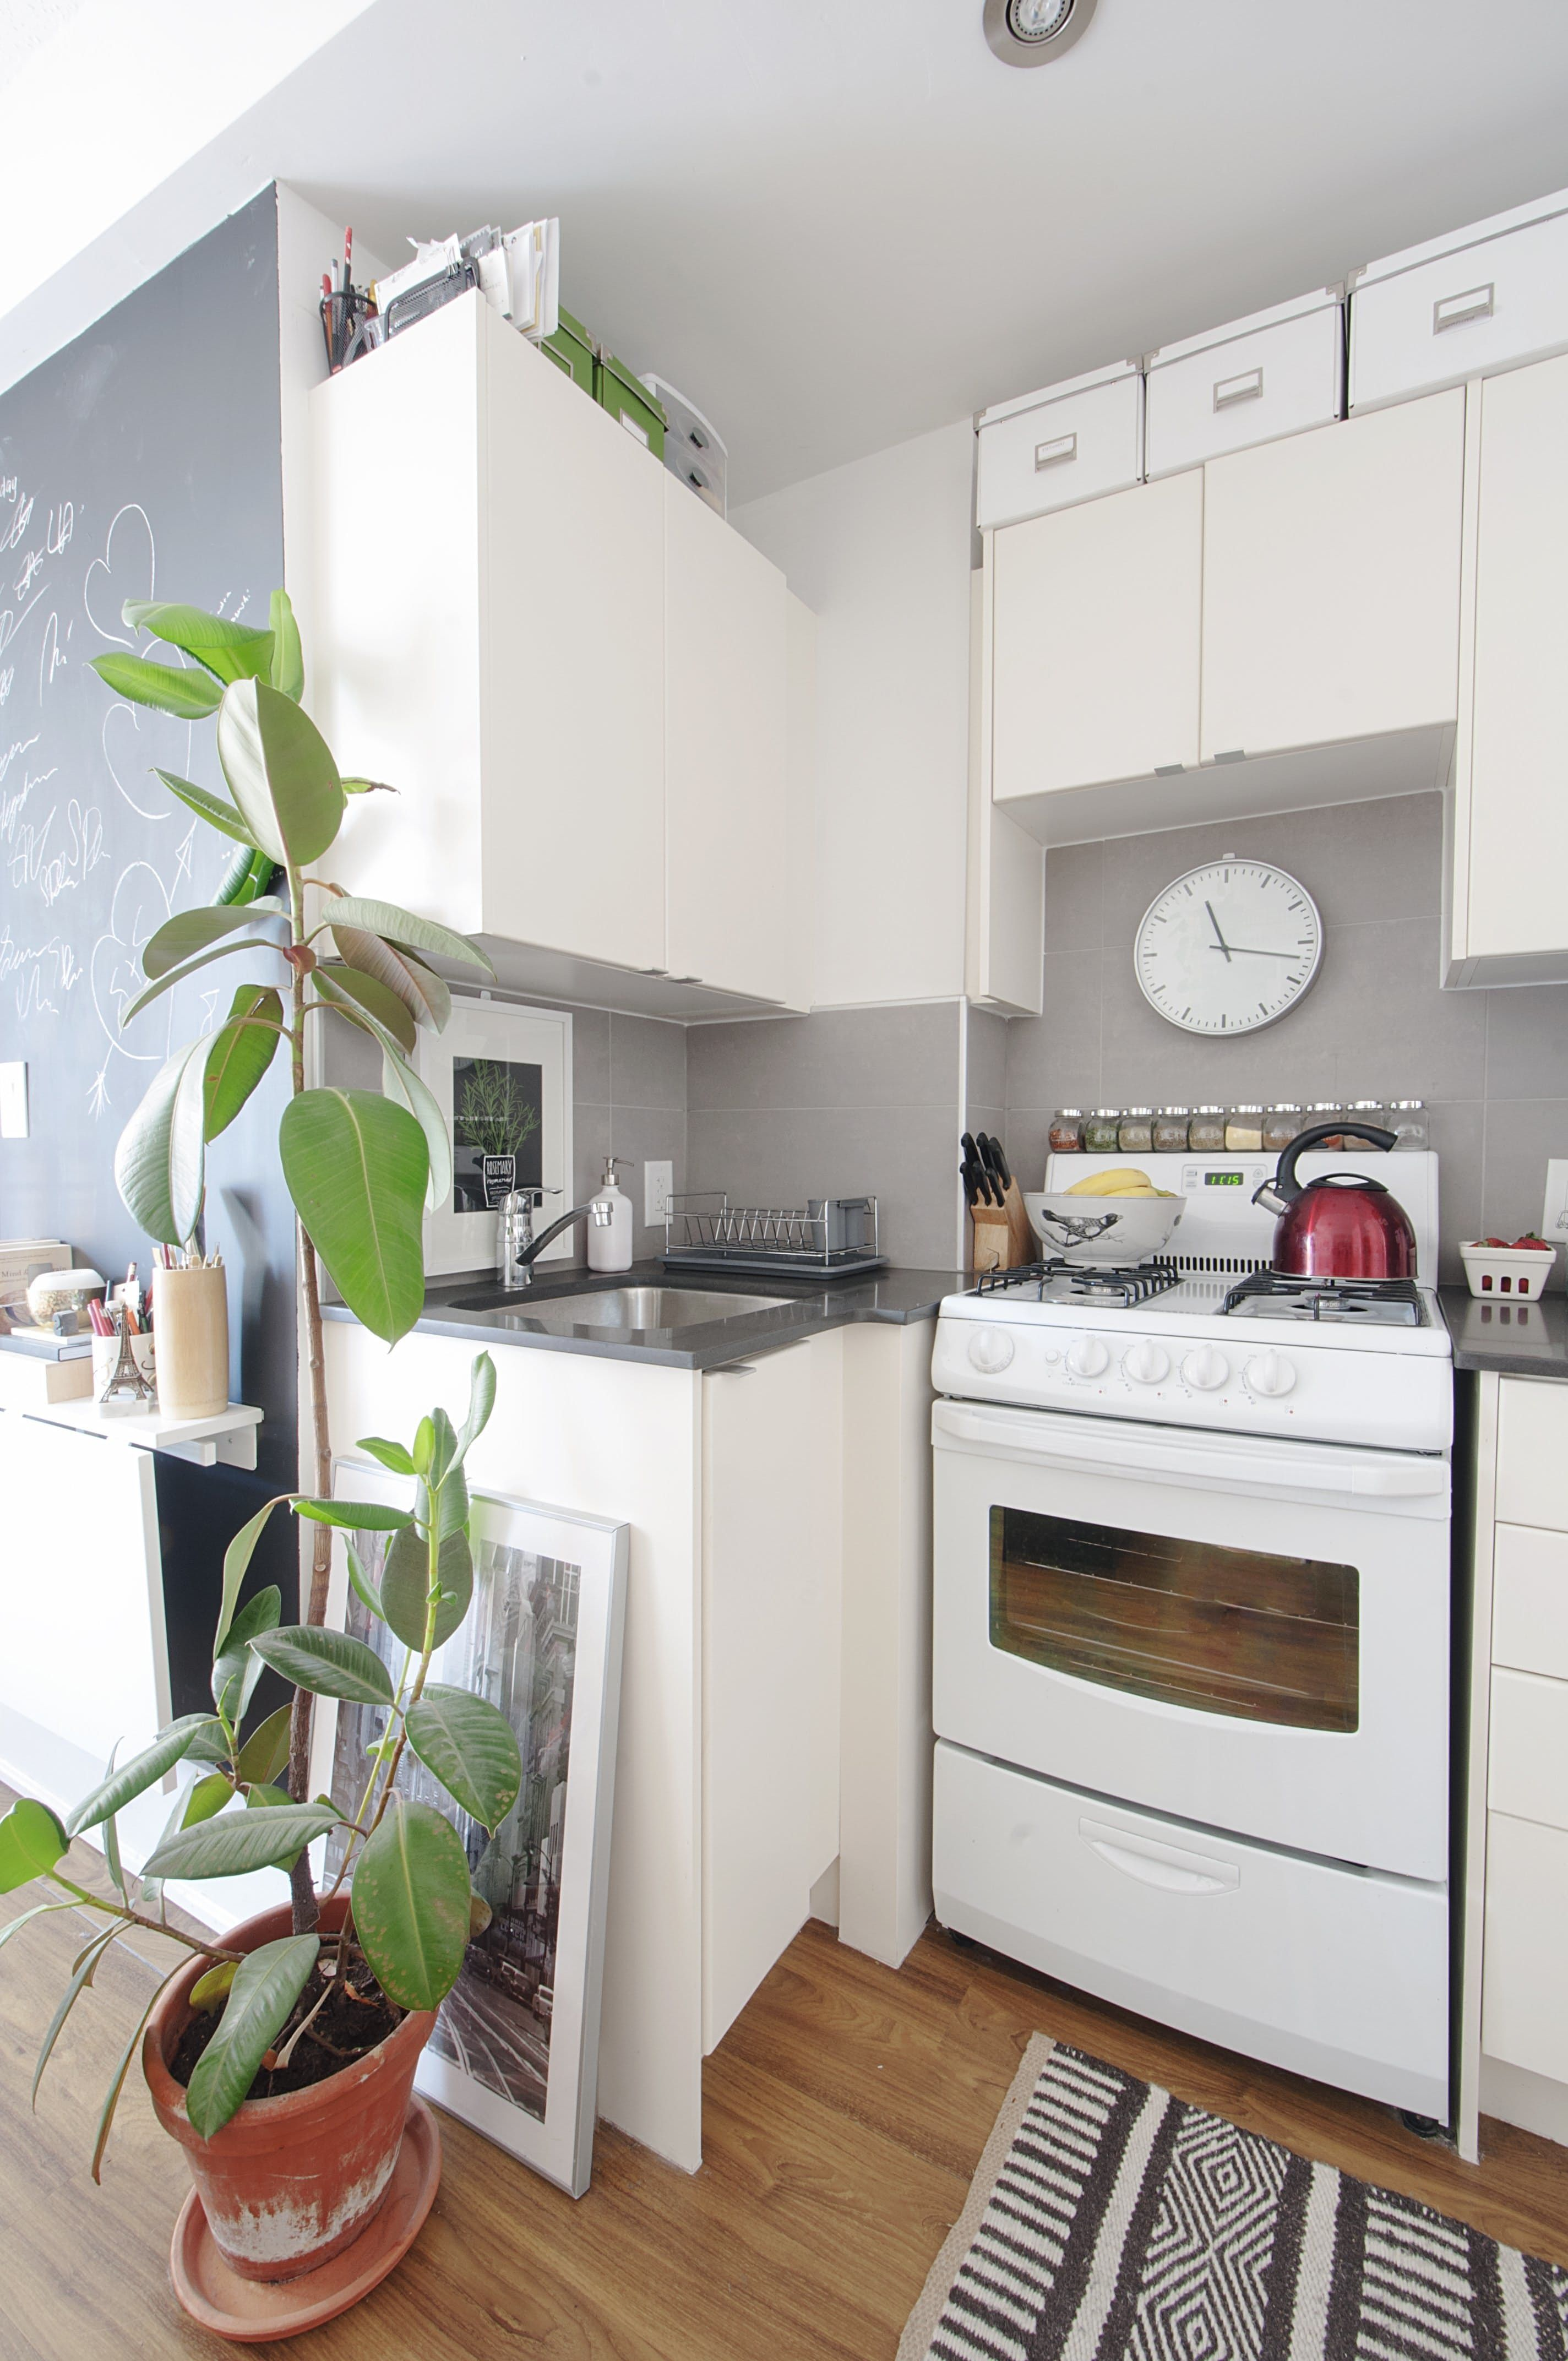 sneaky hidden storage solutions for small spaces with images small kitchen kitchen remodel on kitchen organization small space id=30195